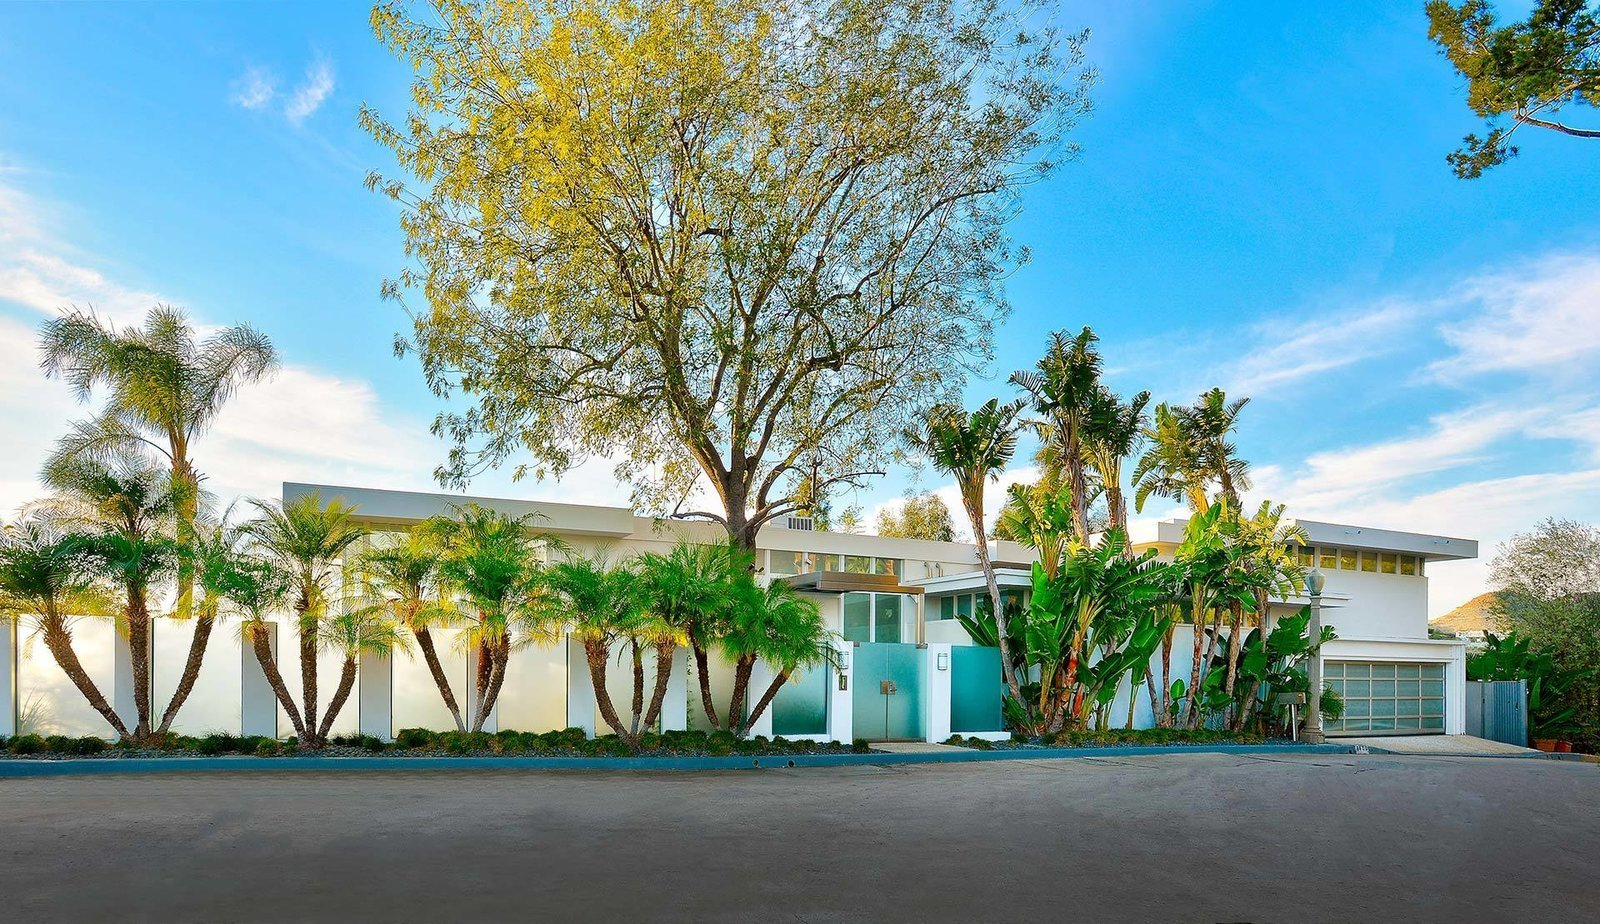 Photo 1 of 13 in Actor Brendan Fraser's Former Beverly Hills Home Is For Sale For $4.25 Million